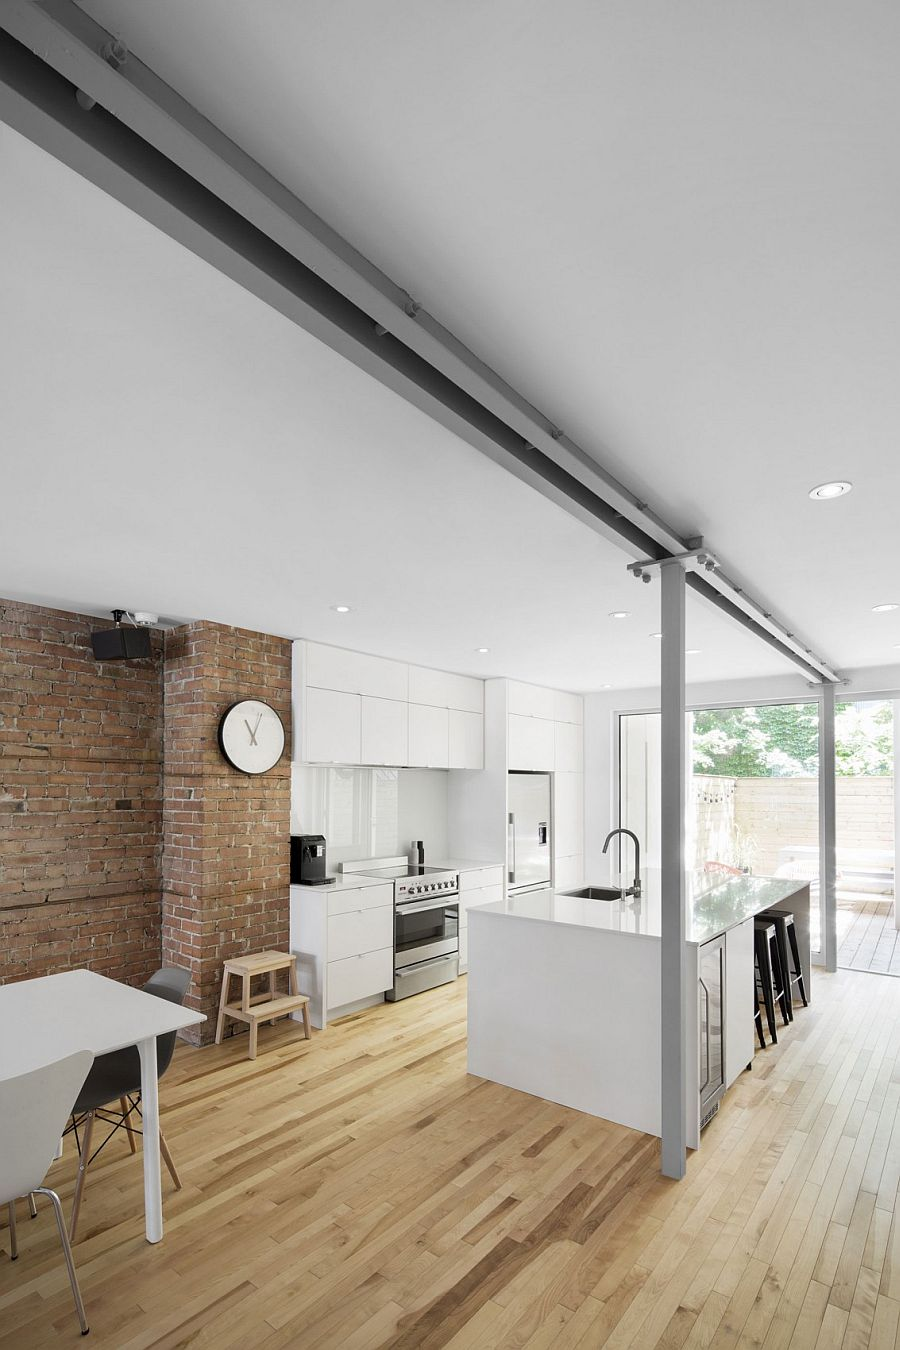 Contemporary kitchen of the home sits next to the exposed brick wall